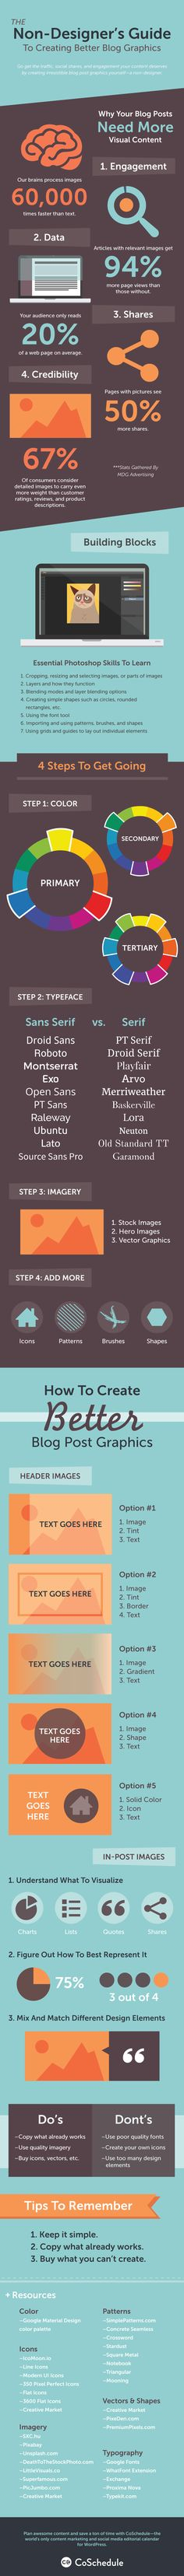 the non-designer's guide to creating blog graphics infographic...  with the exception of a couple of items i agree.